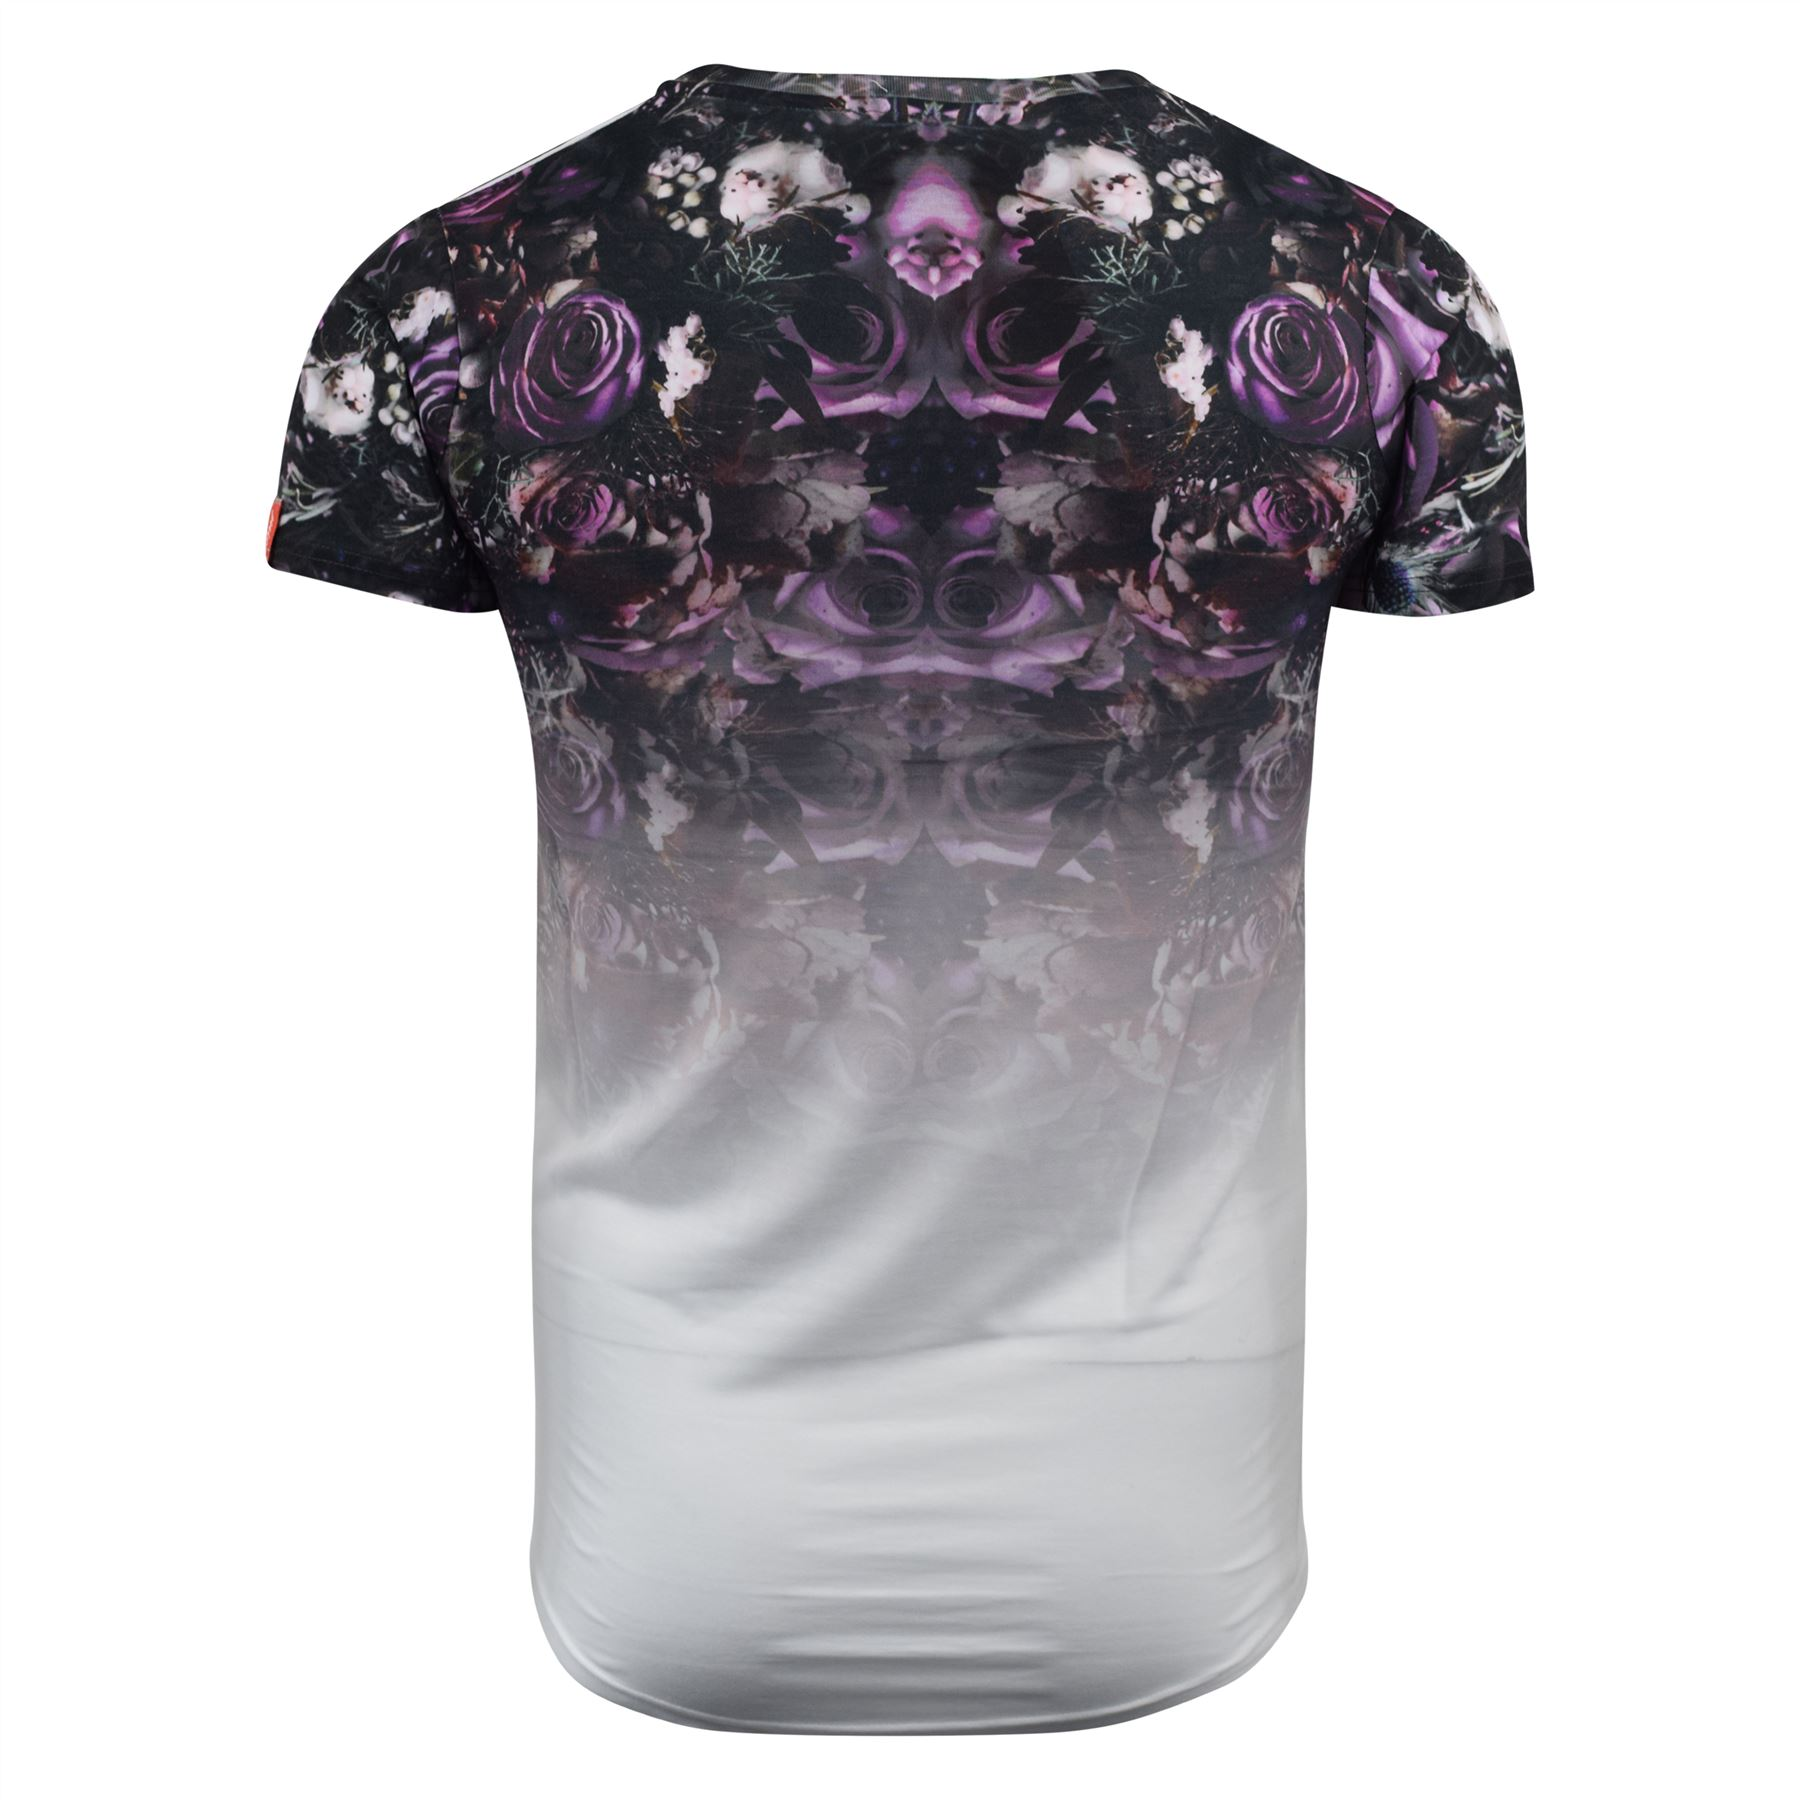 Mens-T-Shirt-Juice-Floral-Print-Flower-Crew-Neck-Tee-Top thumbnail 24